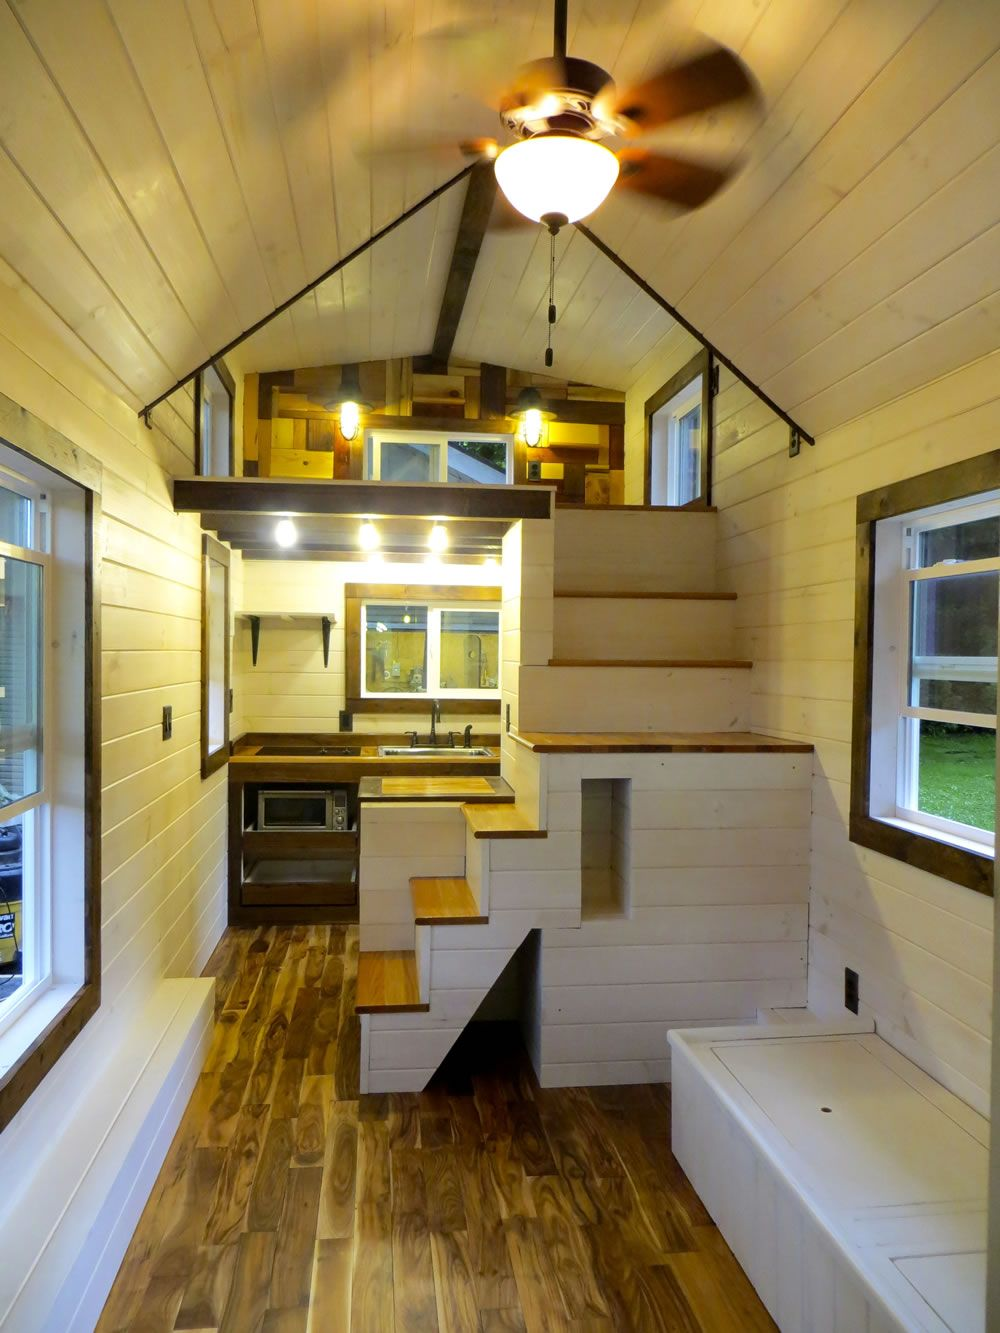 Cozy Tiny House Decor Ideas House Search And Tiny House Design - Interiors of tiny houses